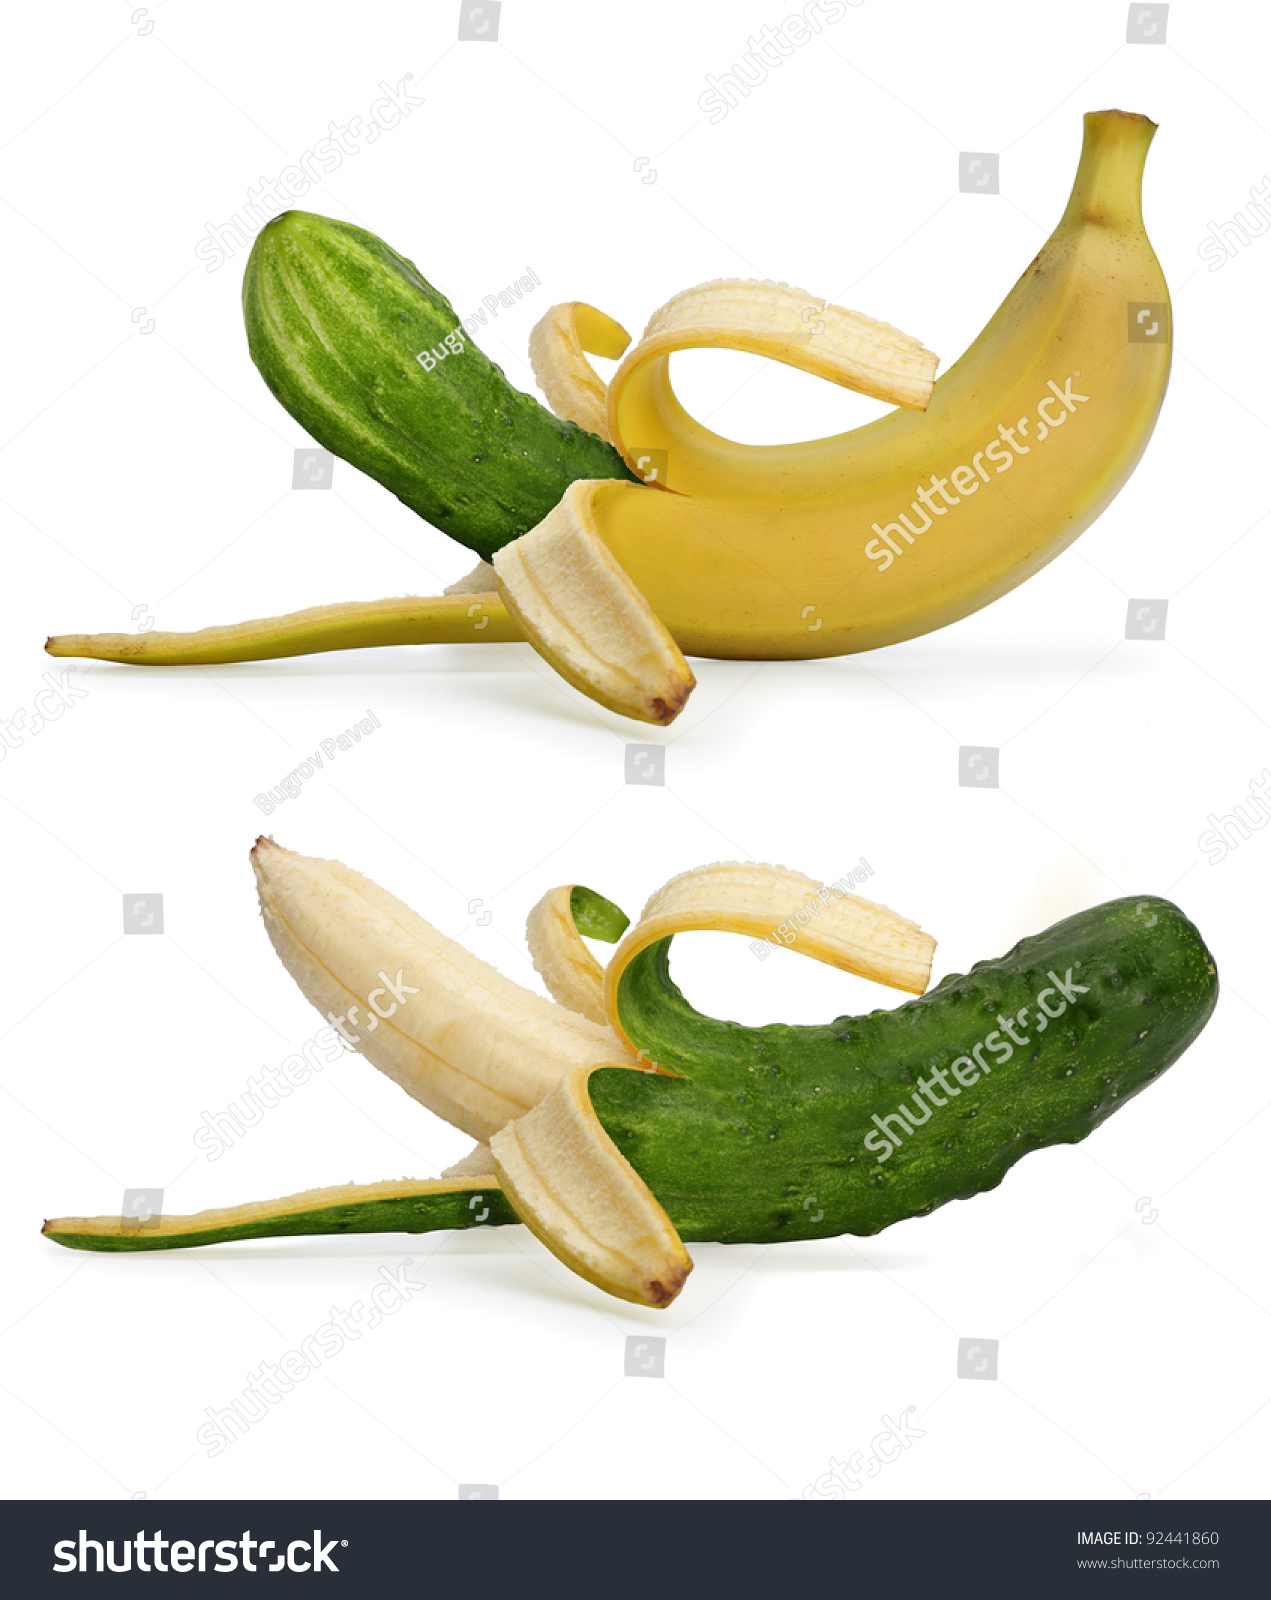 The cucumber the banana or maybe his dick 9